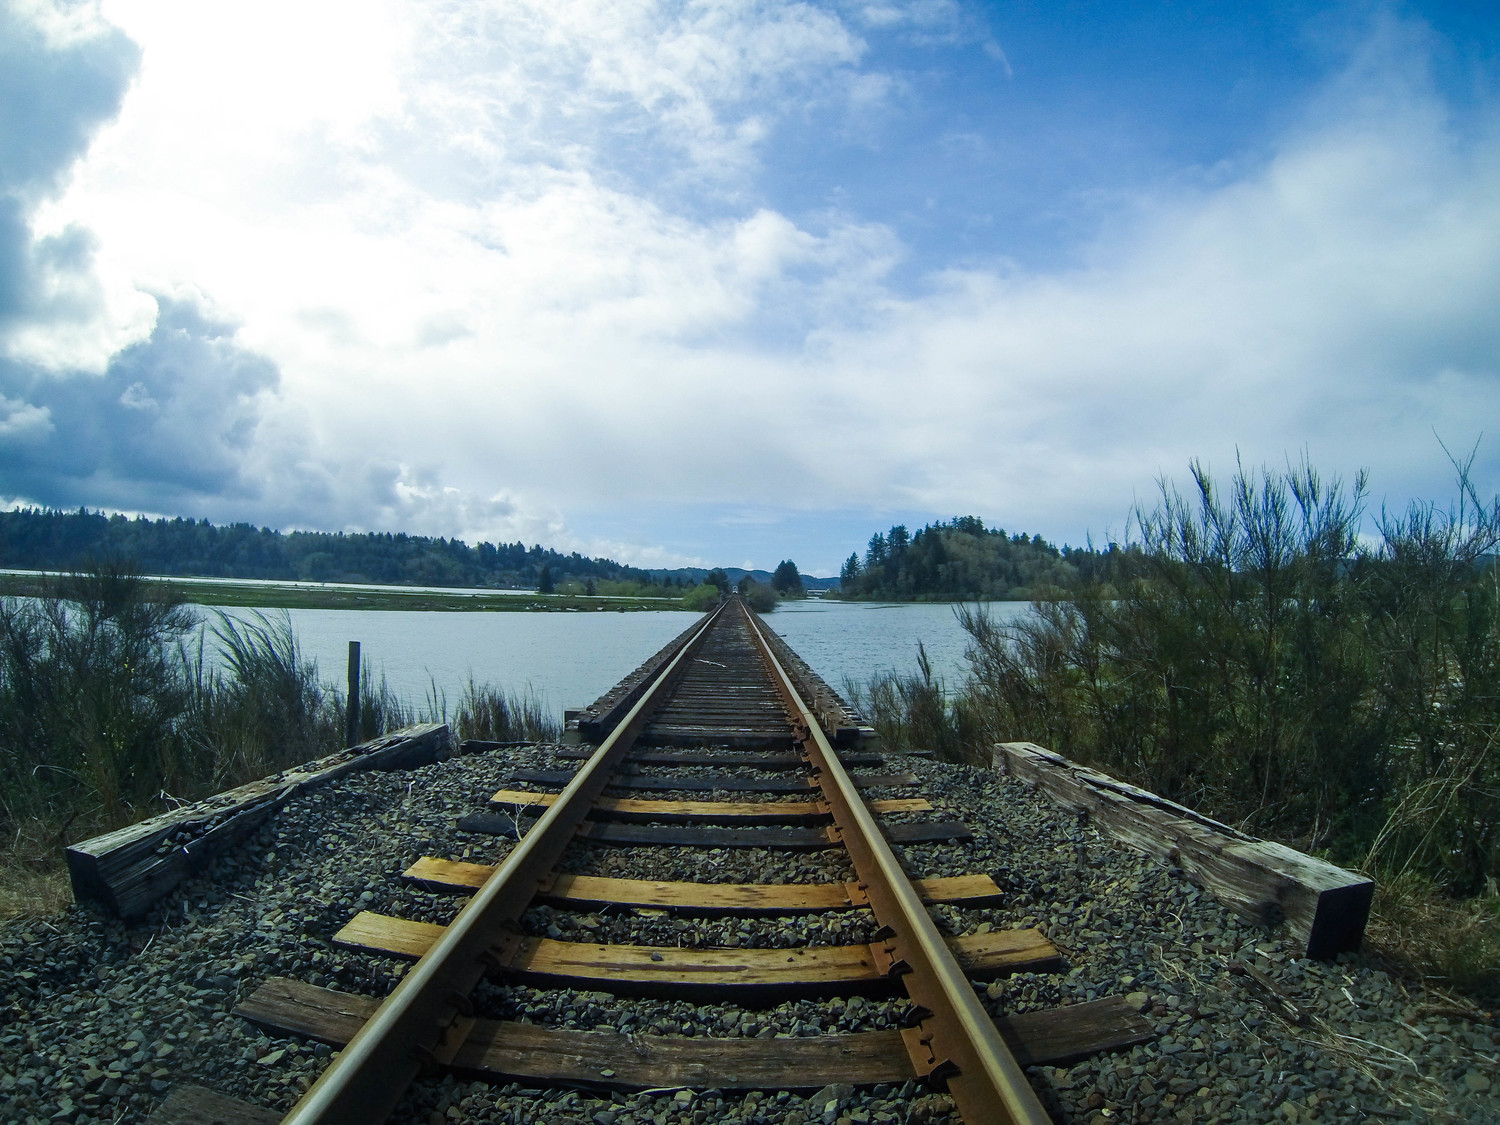 About the Railroad — Port of Coos Bay - Oregon's Seaport